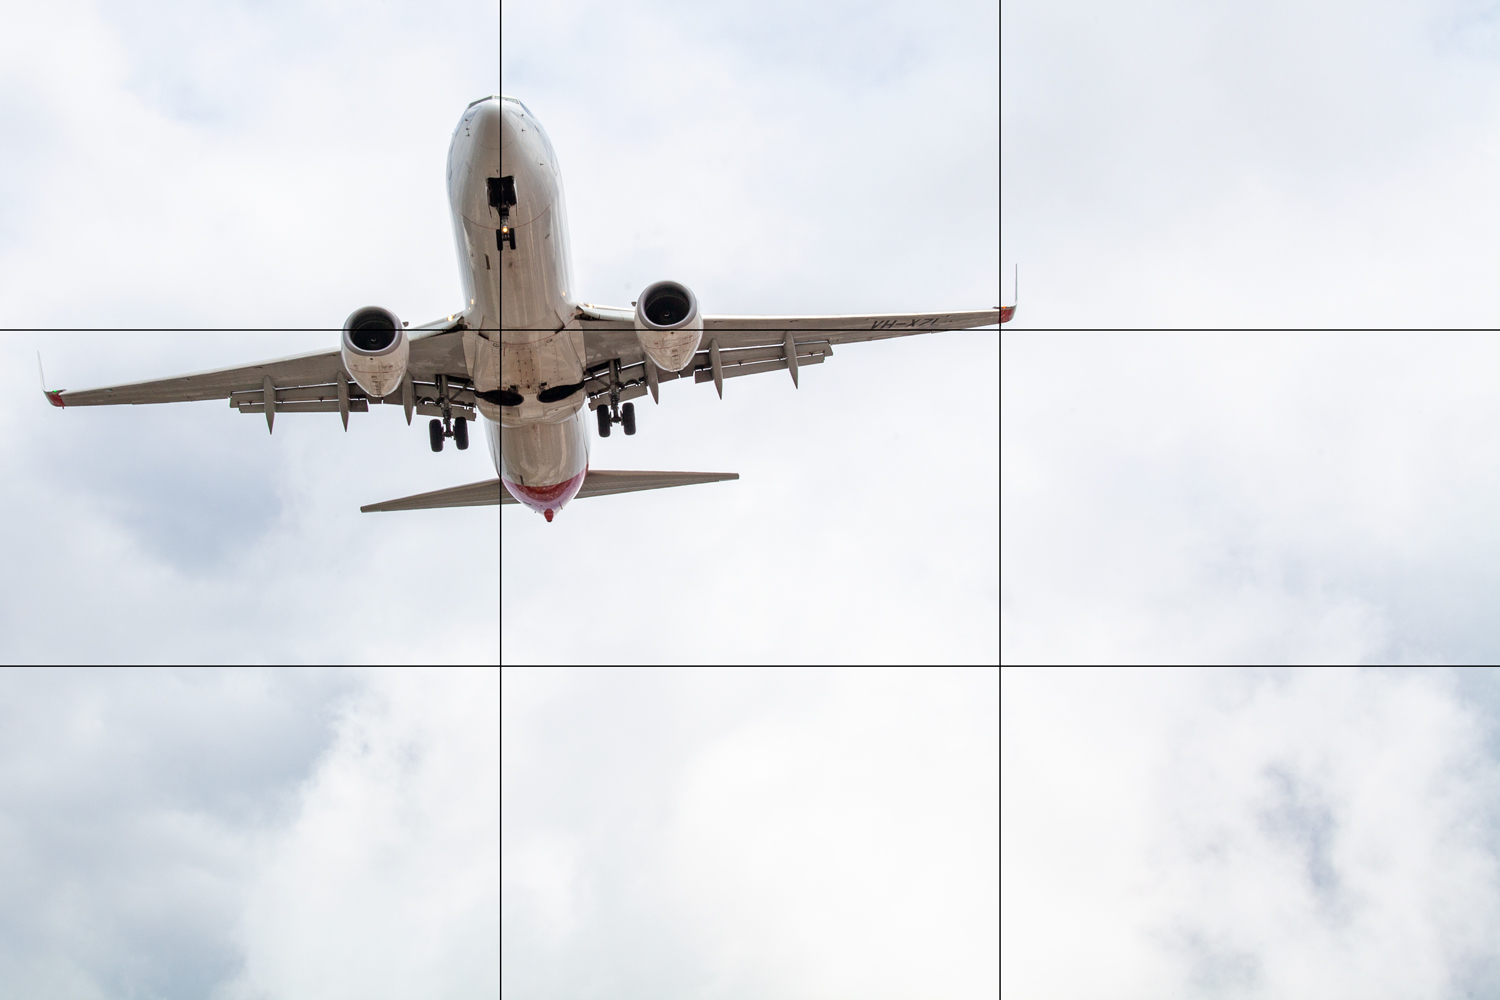 Rule of thirds examples - a Boeing 737 on approach to land at Sydney International Airport